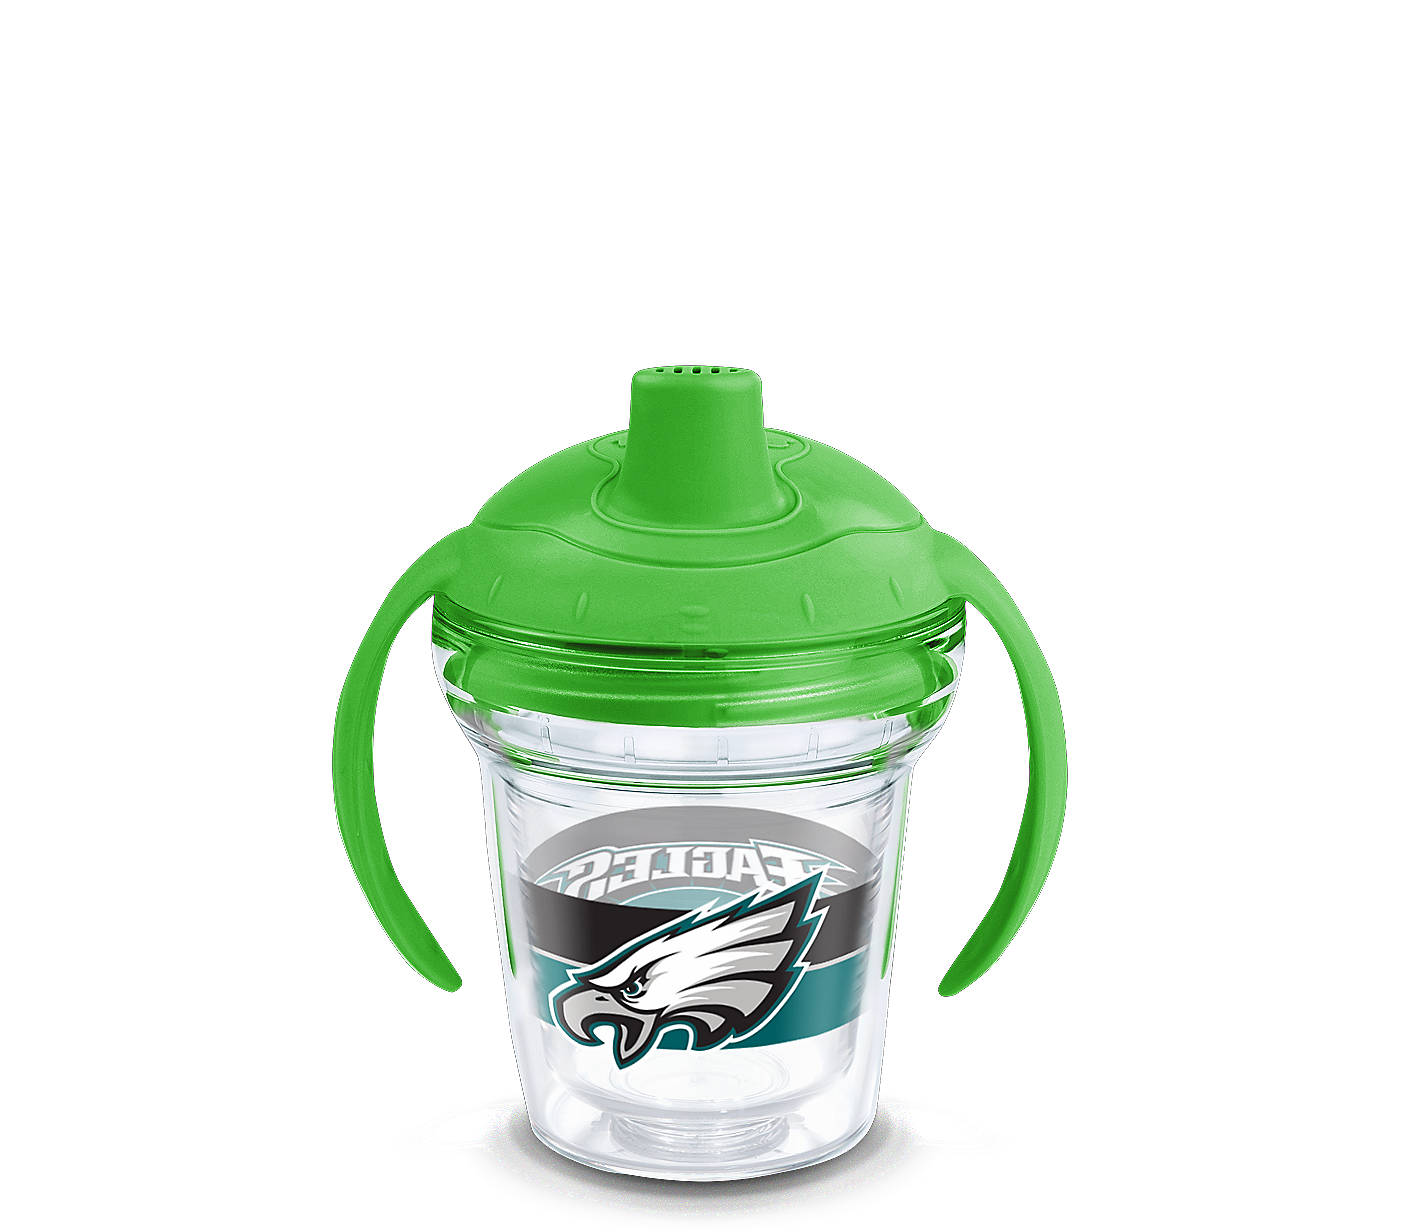 Eagles-sippy-cup